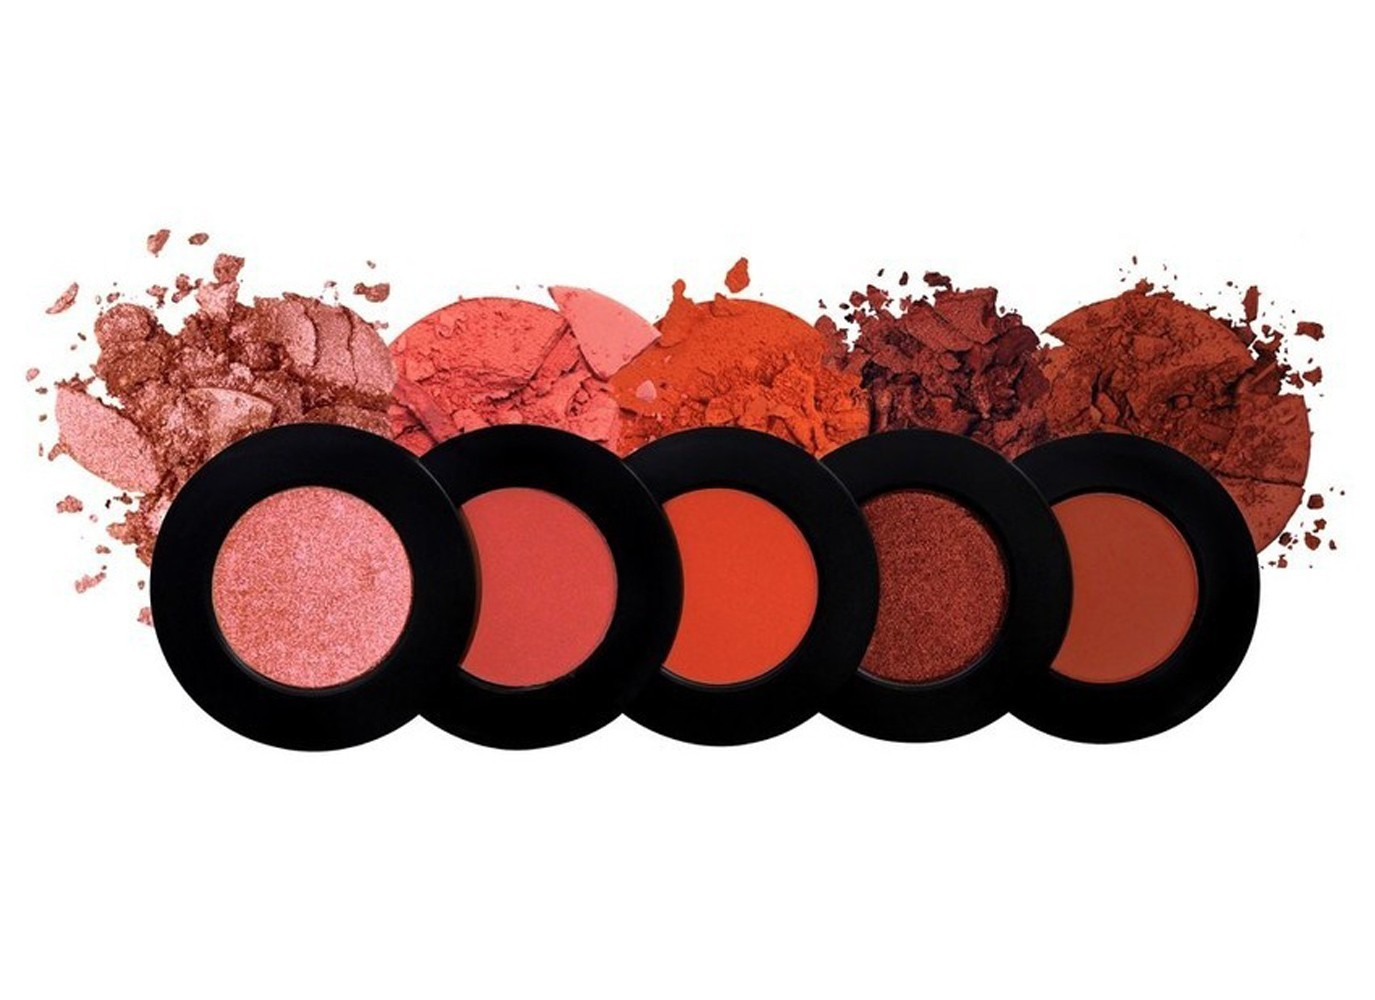 PILHA DE SOMBRAS THE BABY GIRL STACK - MELT